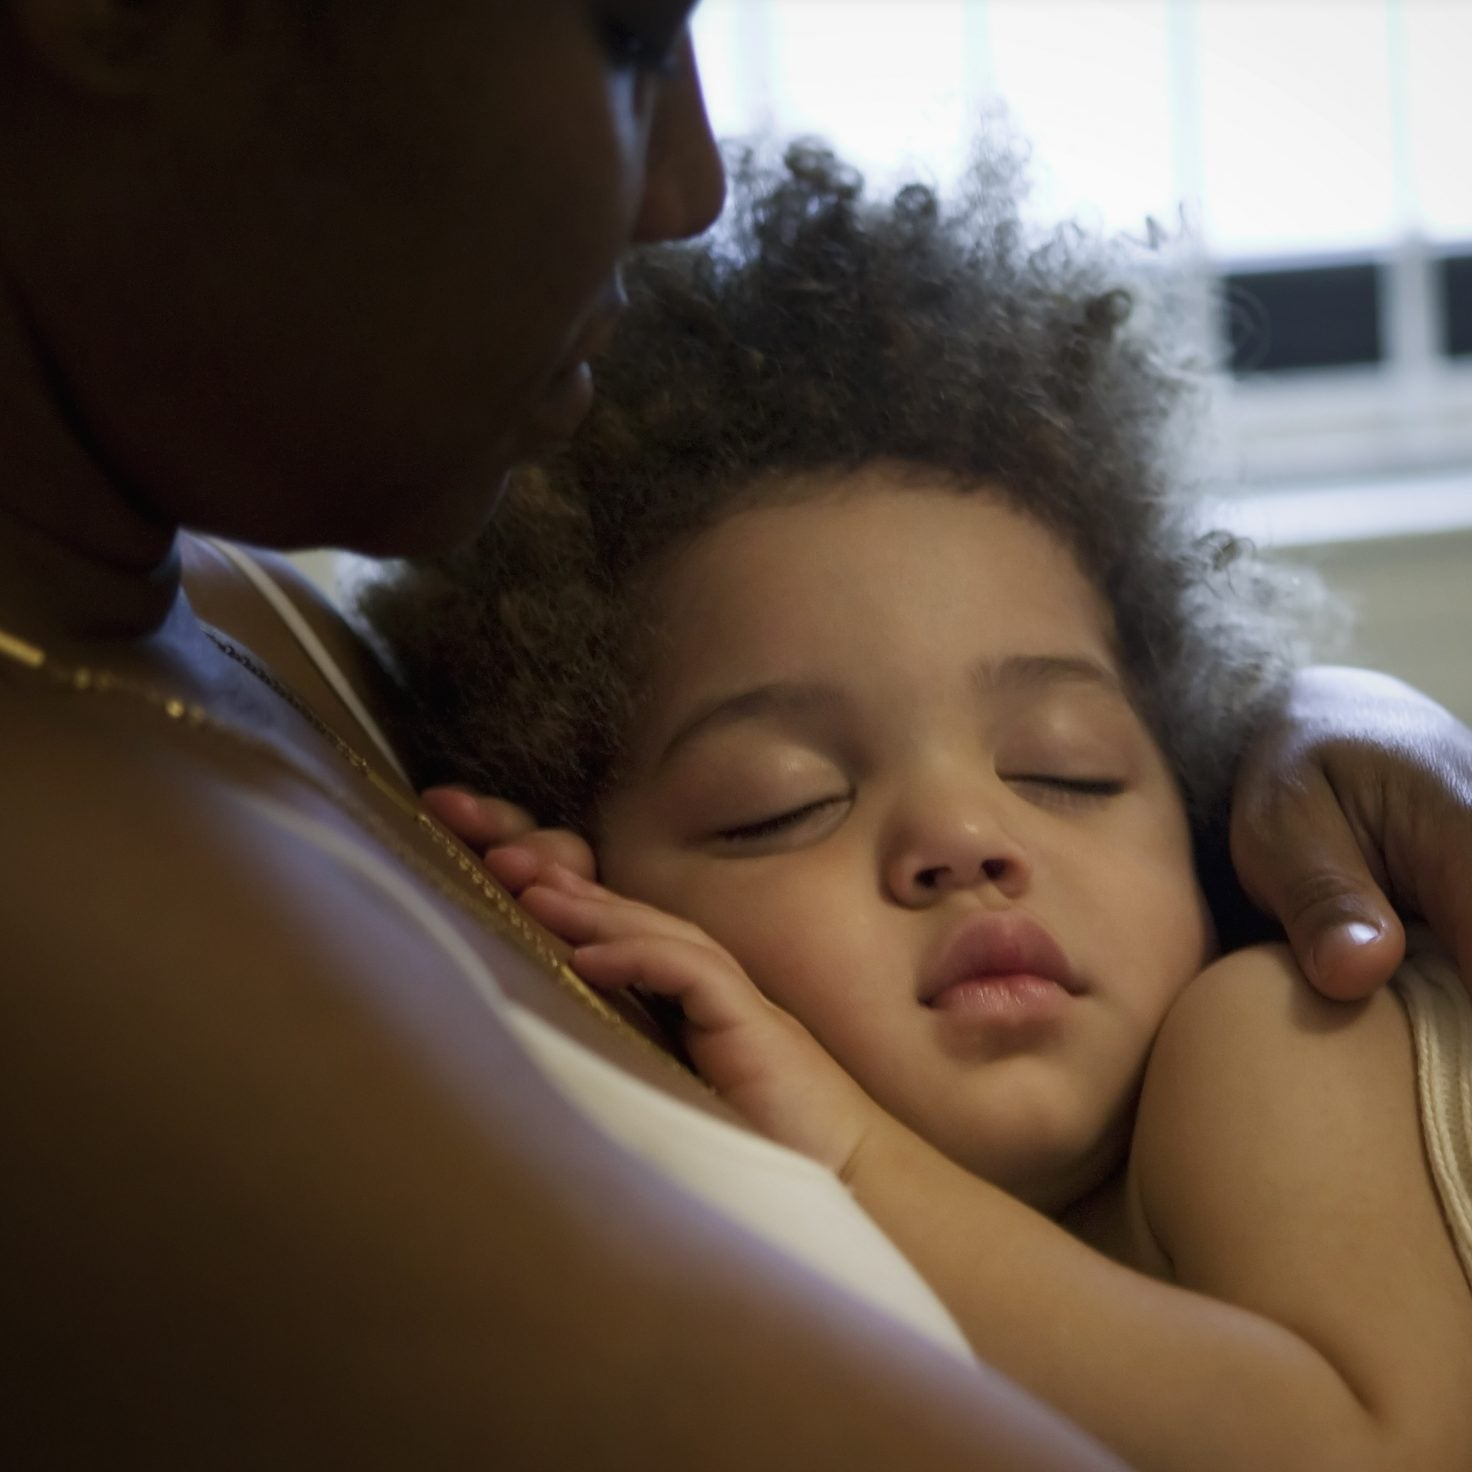 We Spoke With Black Mothers About How COVID-19 Is Affecting Their Families